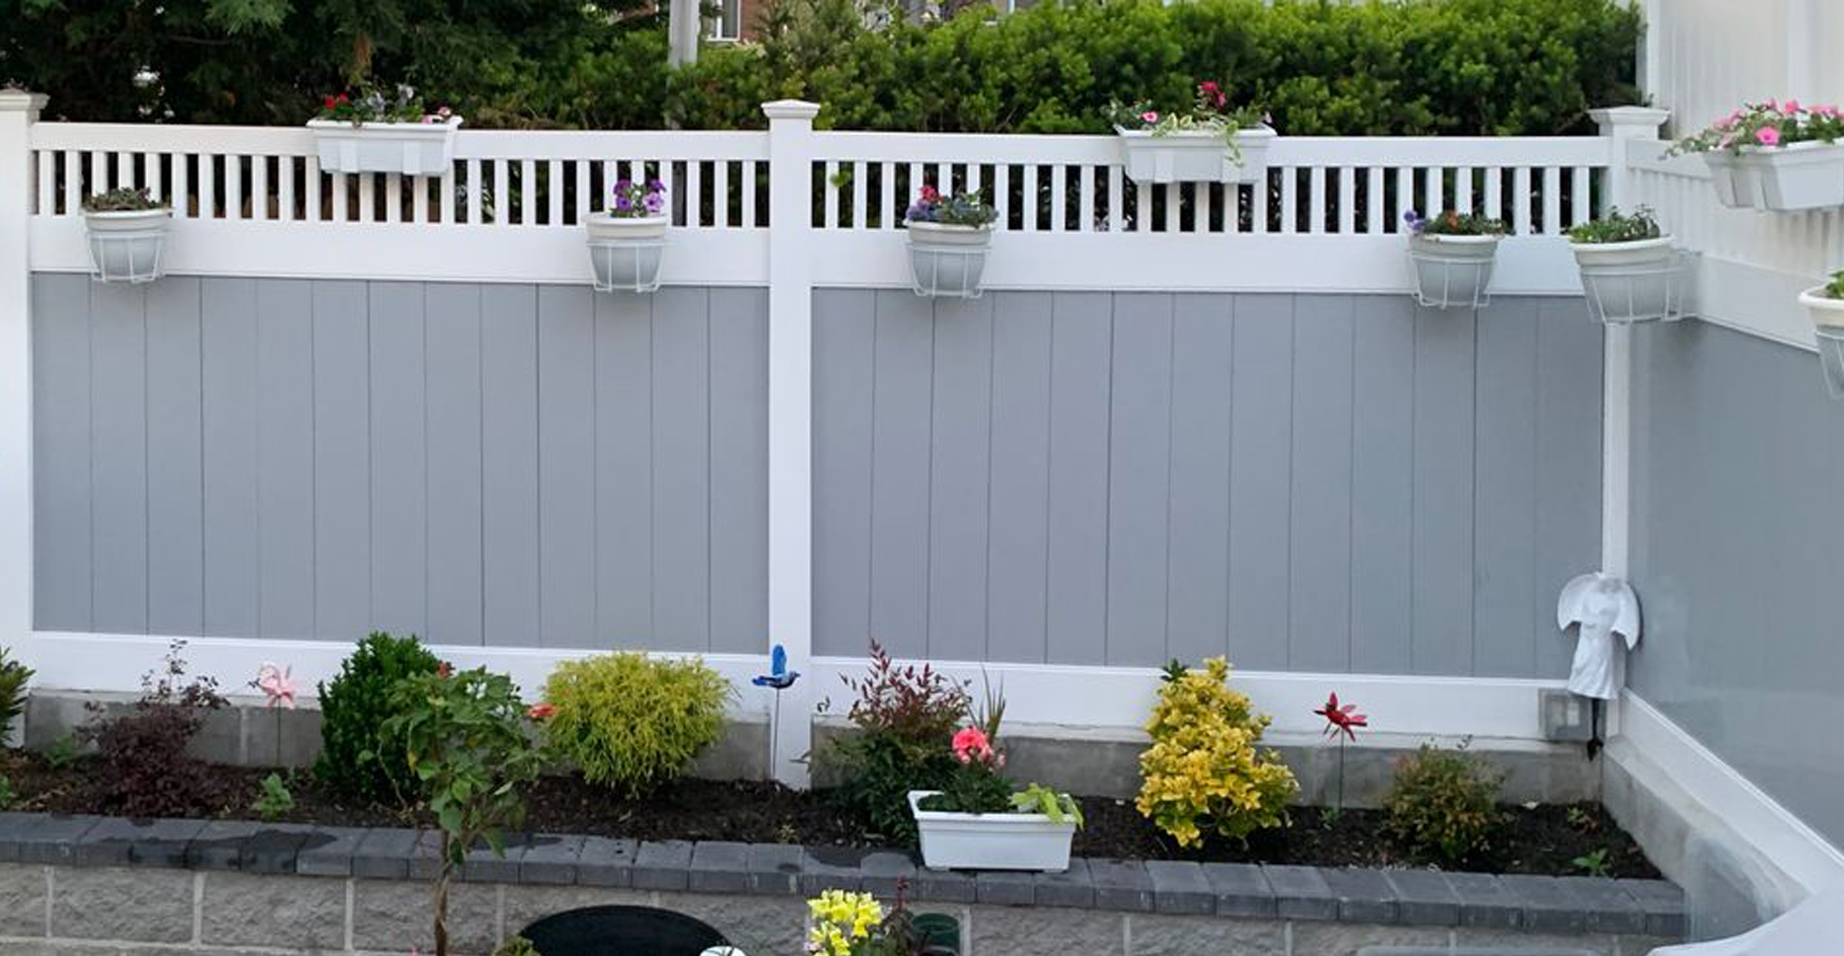 Customer Photo - Flower Boxes on New Fence